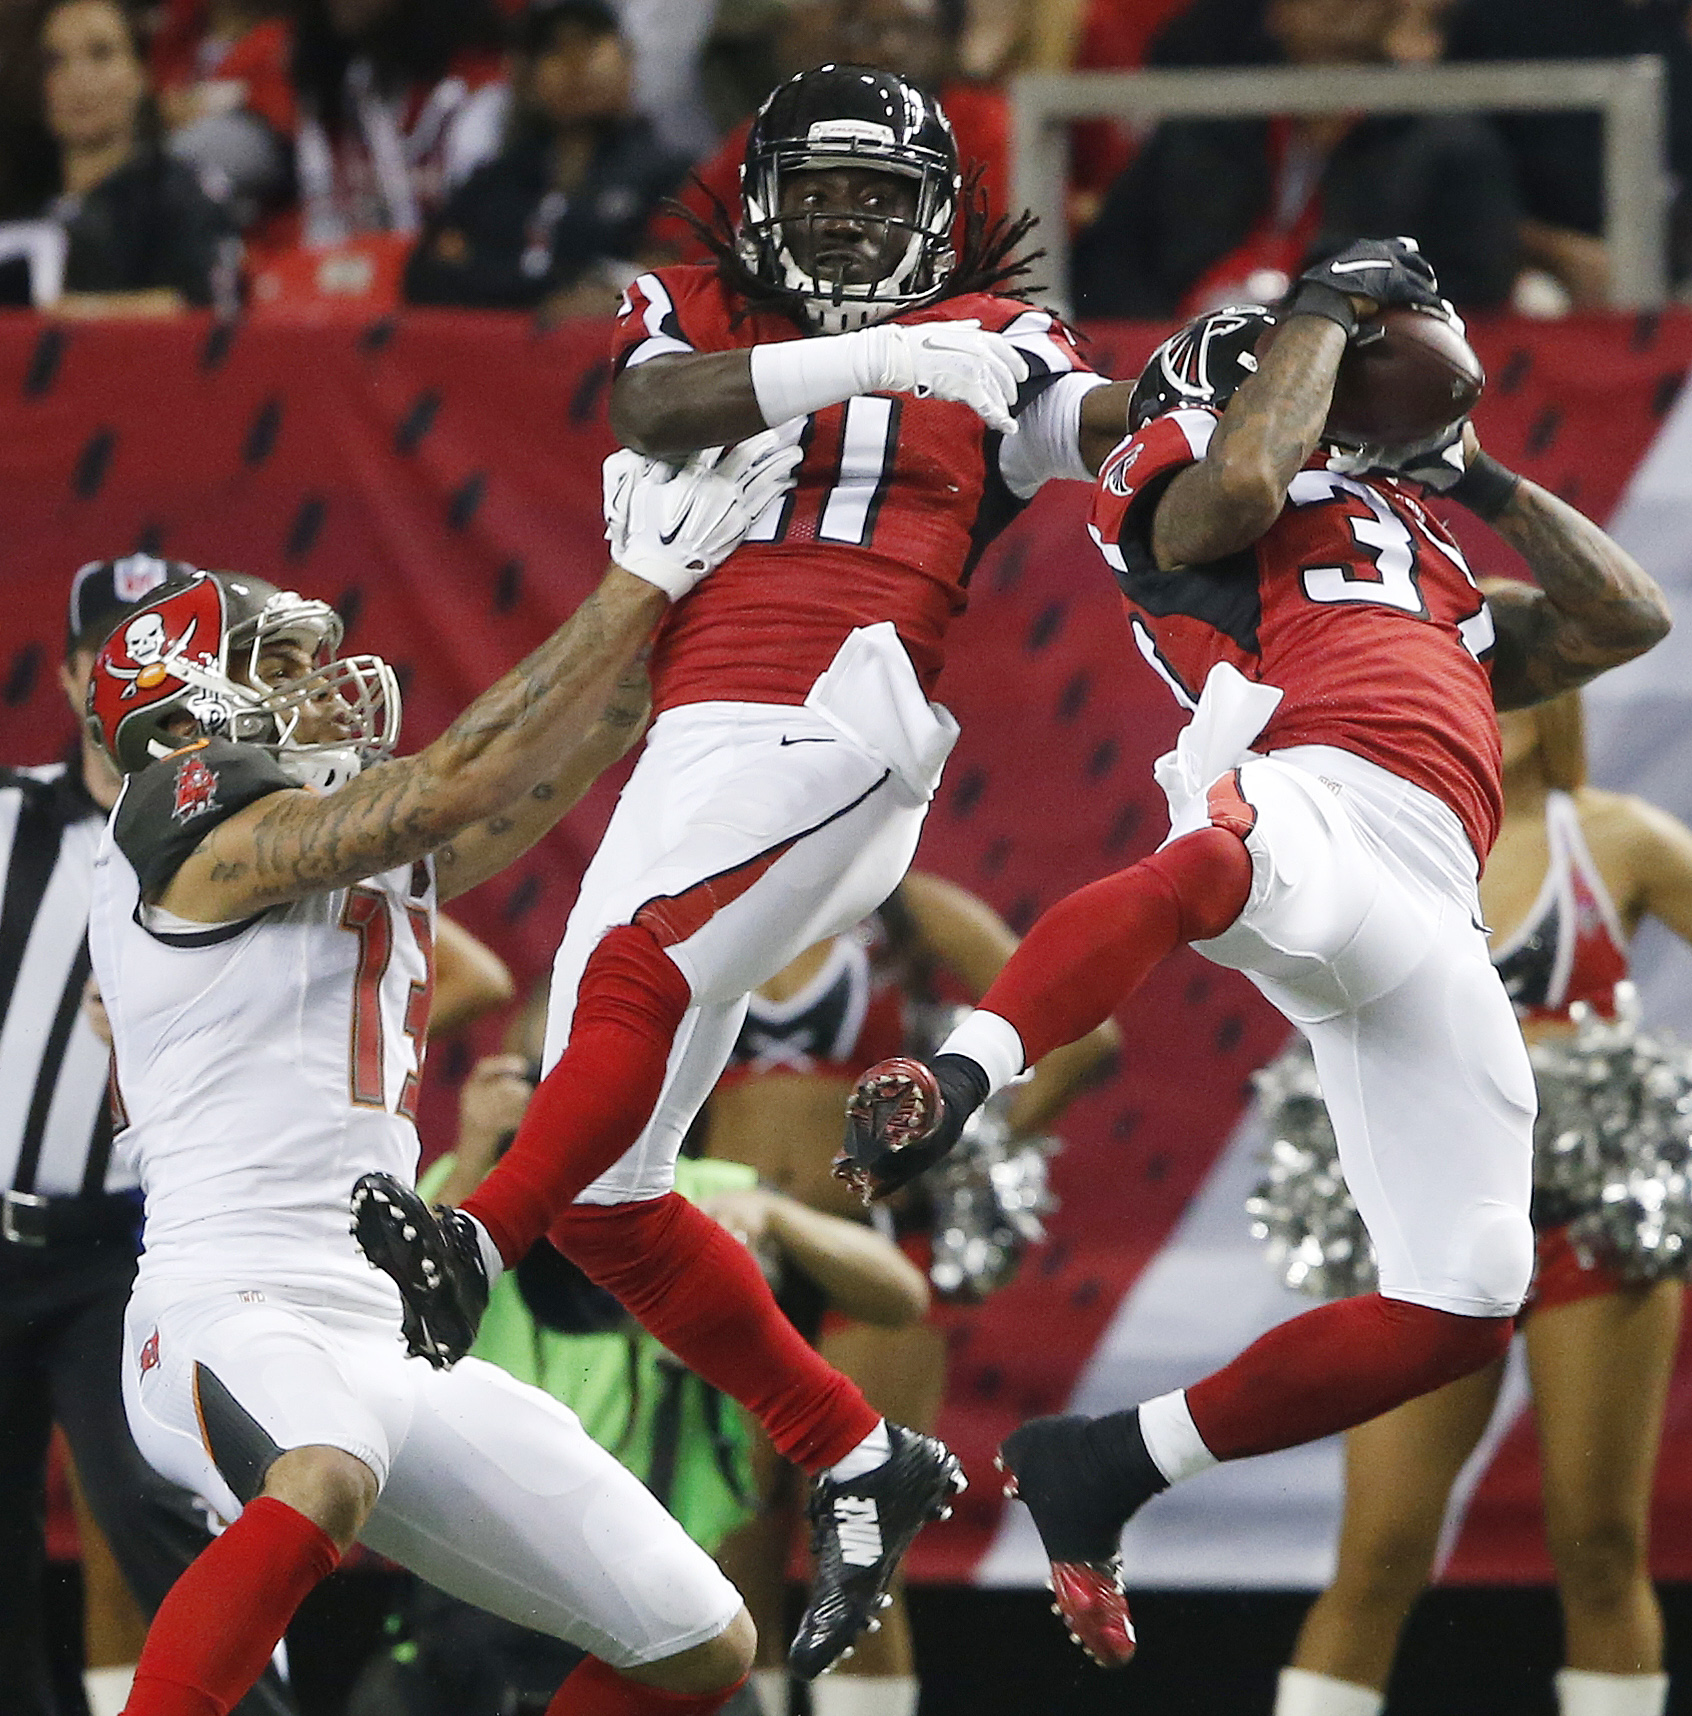 Tampa Bay Buccaneers wide receiver Mike Evans (13) waits for a thrown ball as Atlanta Falcons free safety Ricardo Allen (37) makes the catch and Falcons cornerback Desmond Trufant (21) looks on during the second of an NFL football game, Sunday, Nov. 1, 20